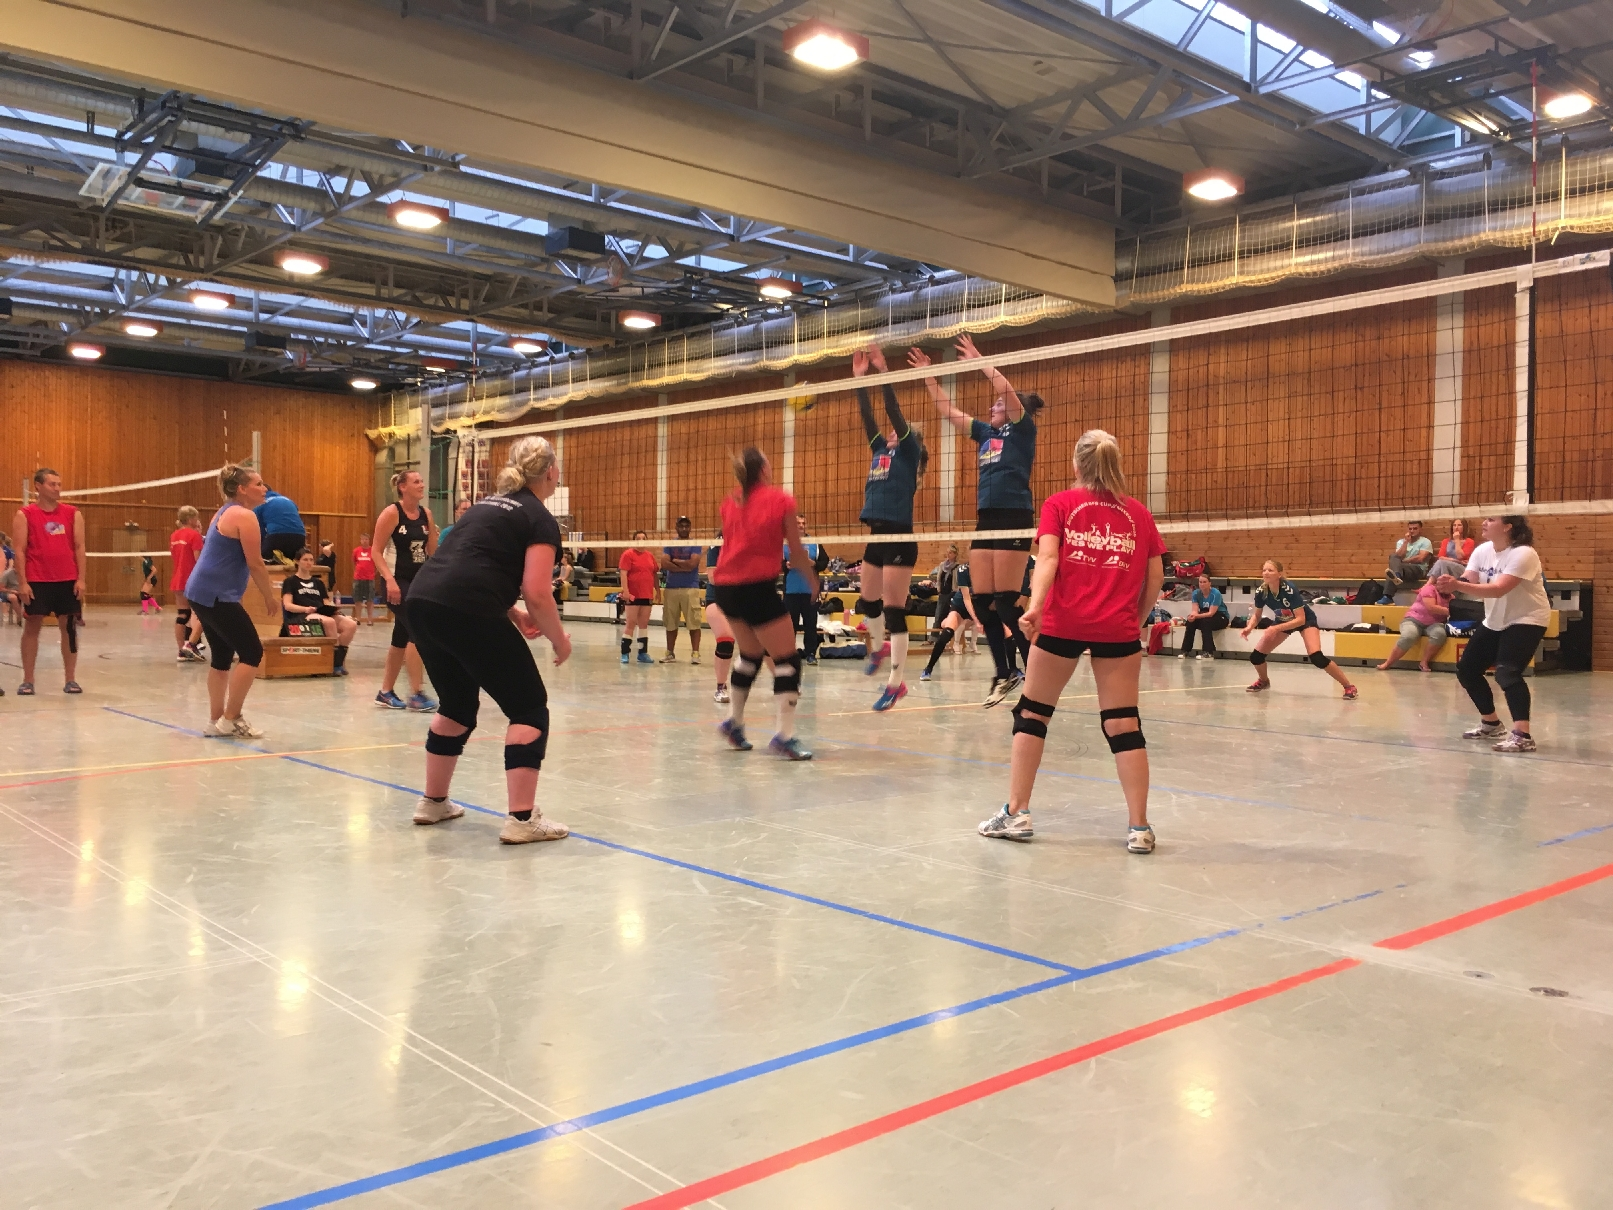 20180526 9 Damenvolleyballturnier Bild17